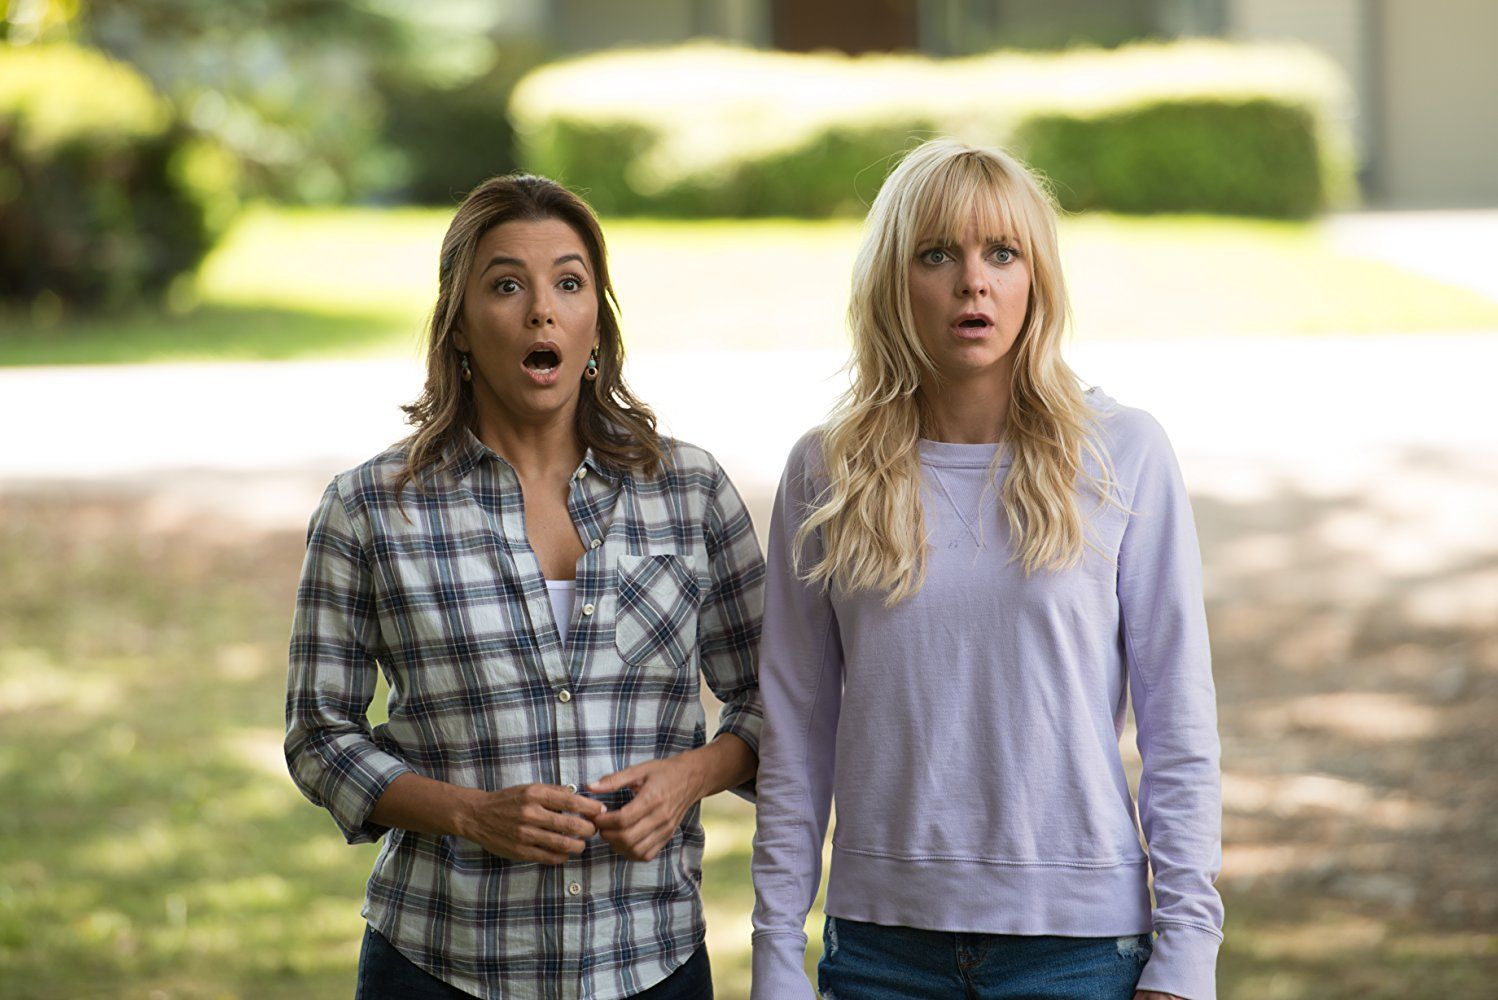 watch overboard 2018 online free 123movies